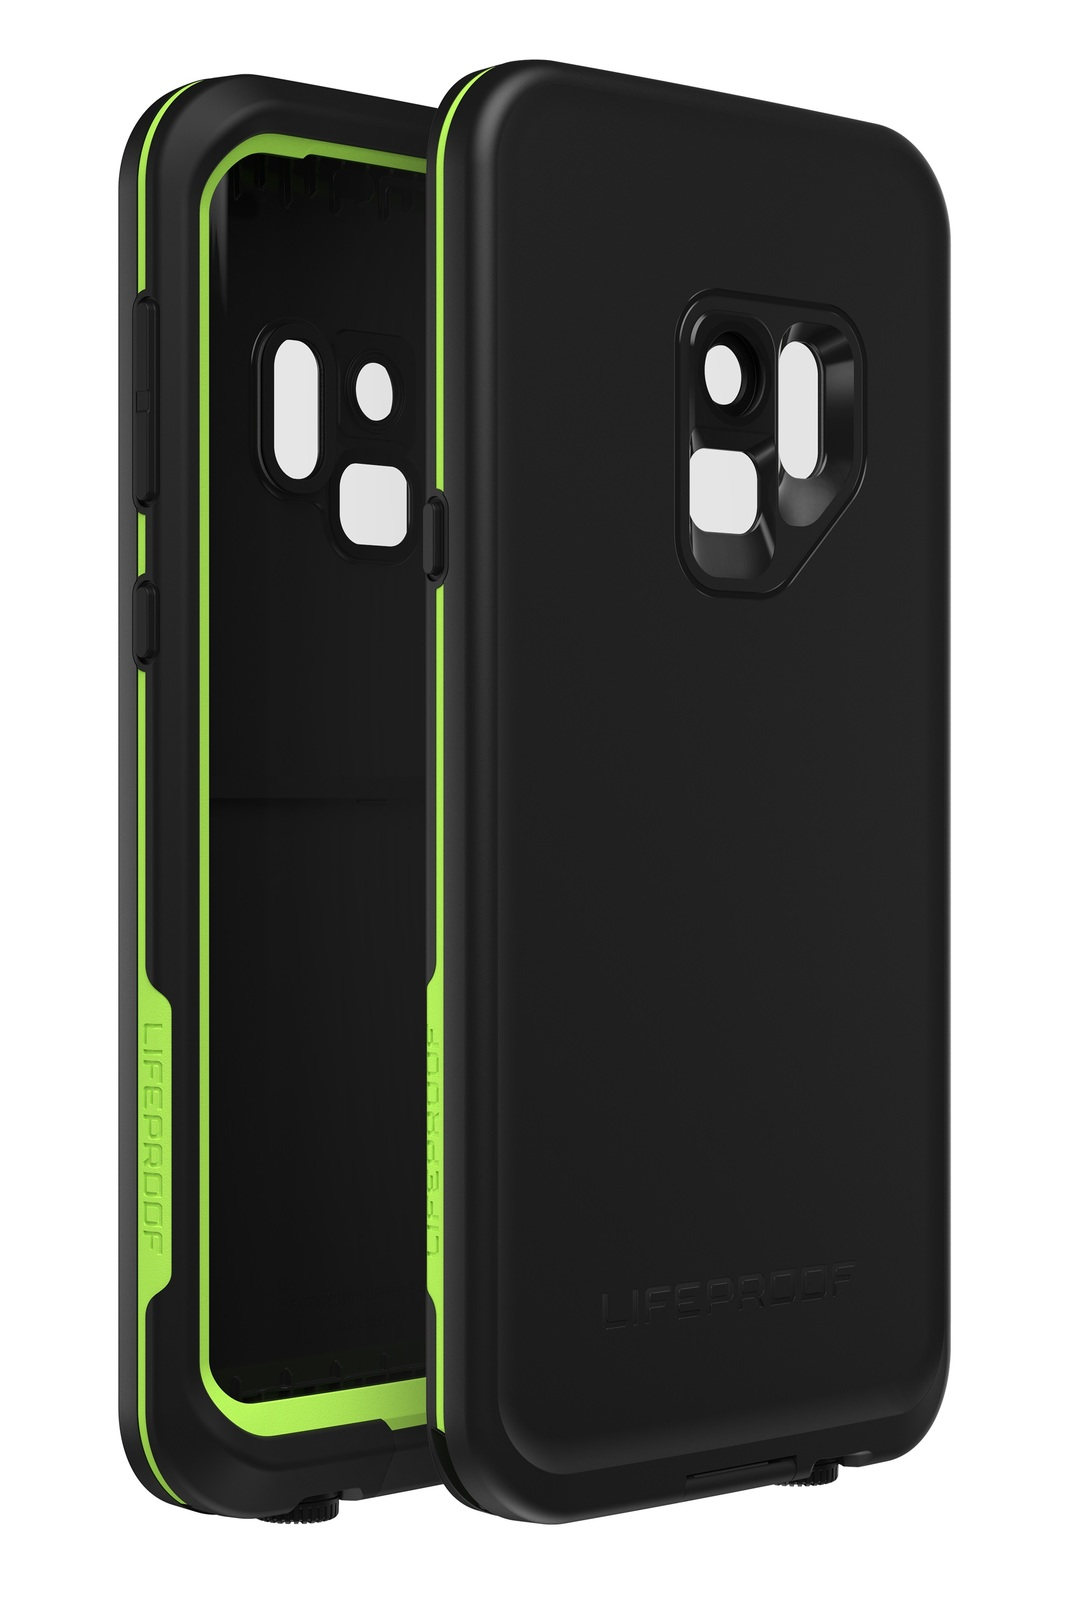 size 40 3733f daa07 LifeProof: Fre Case for Samsung GS9 - Black Lime